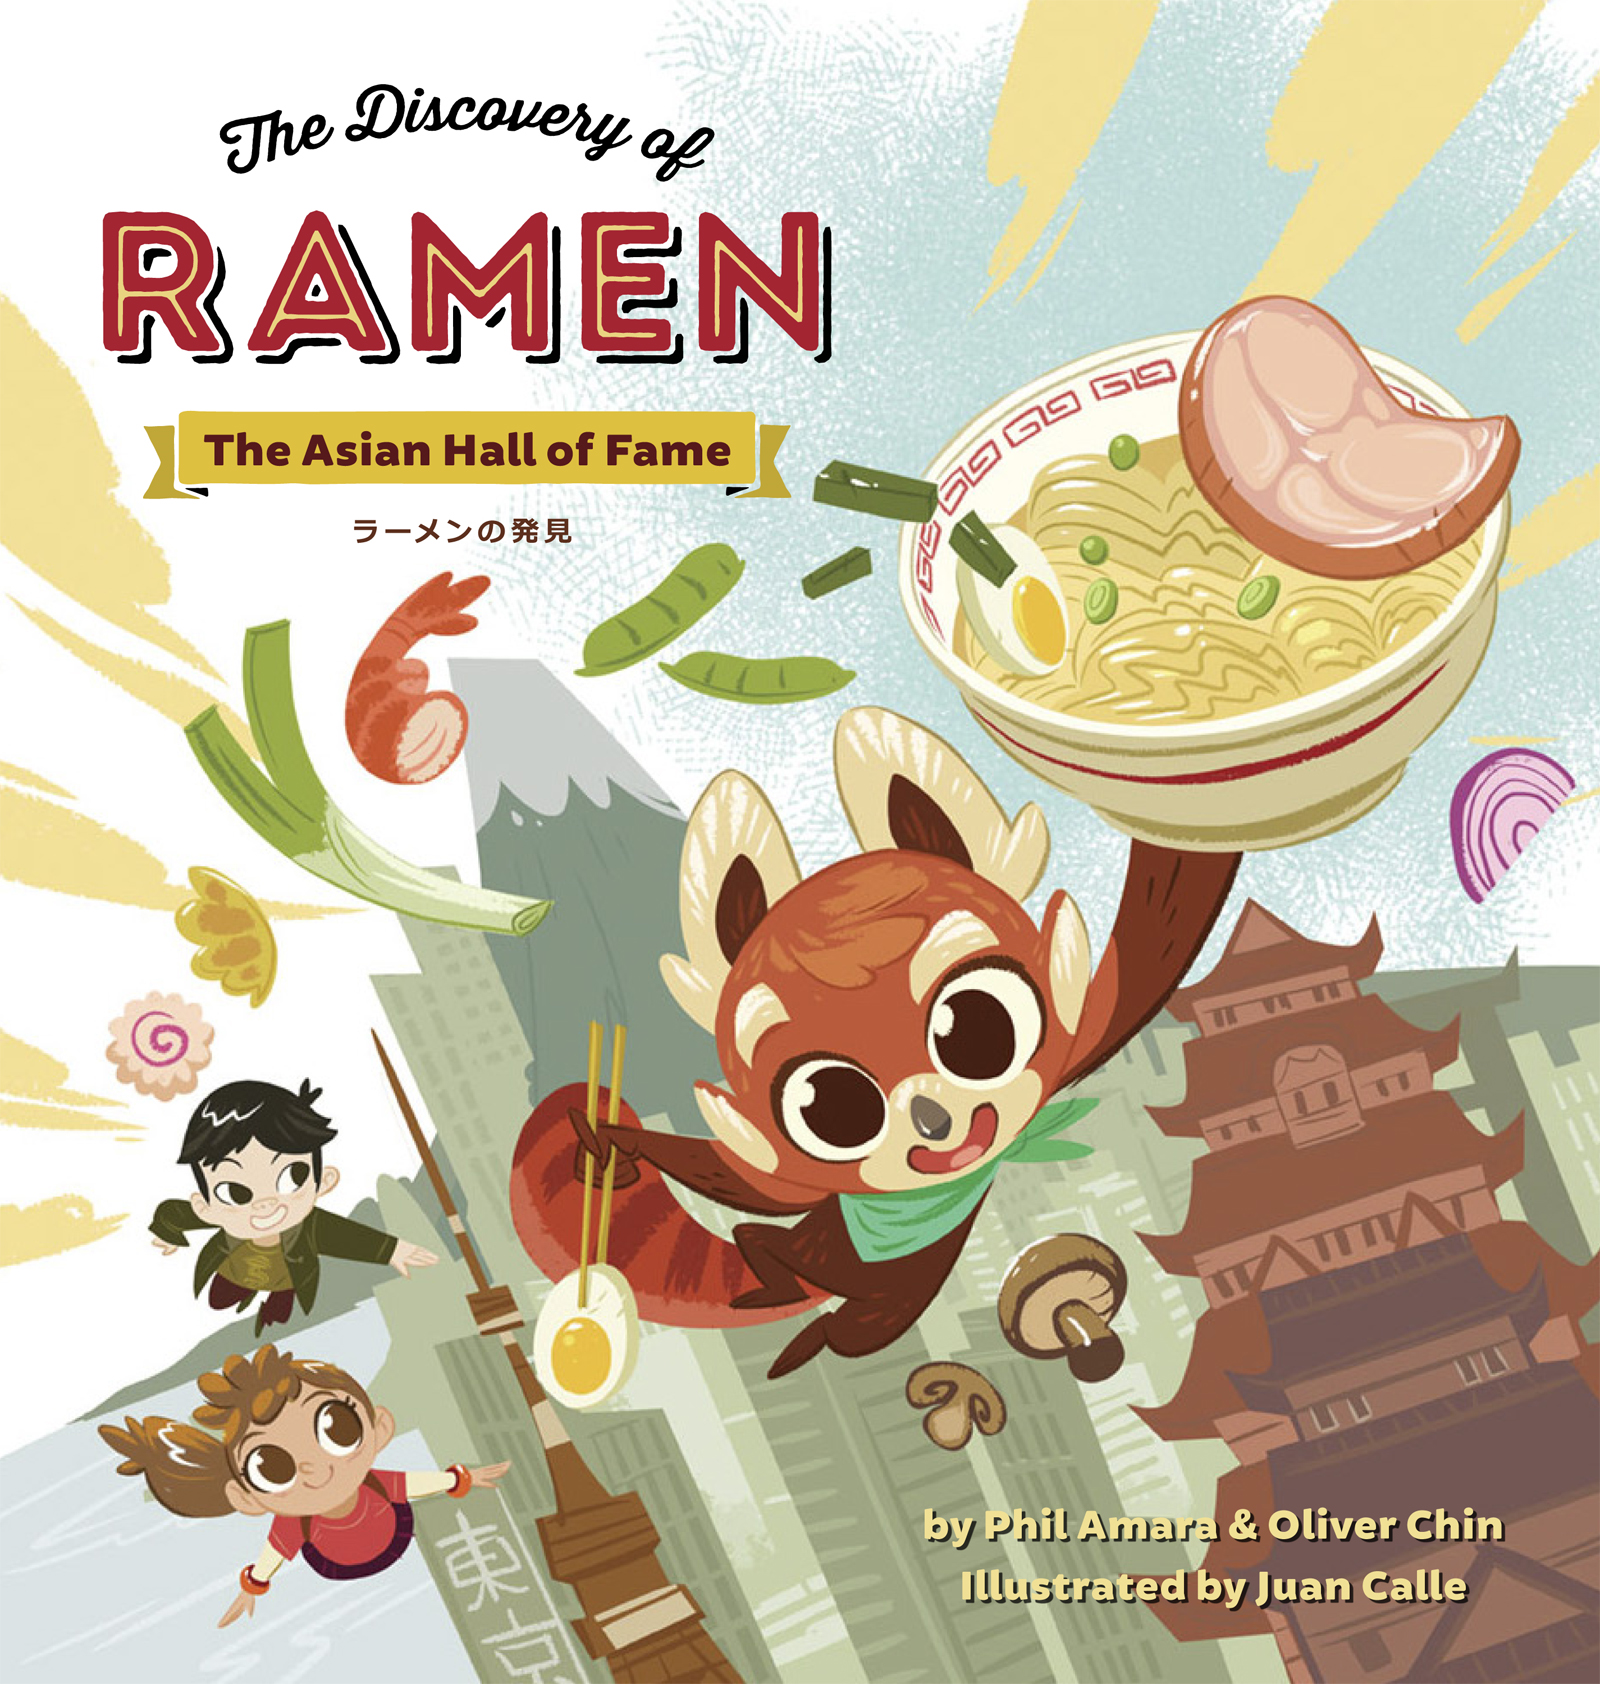 The Discovery of Ramen